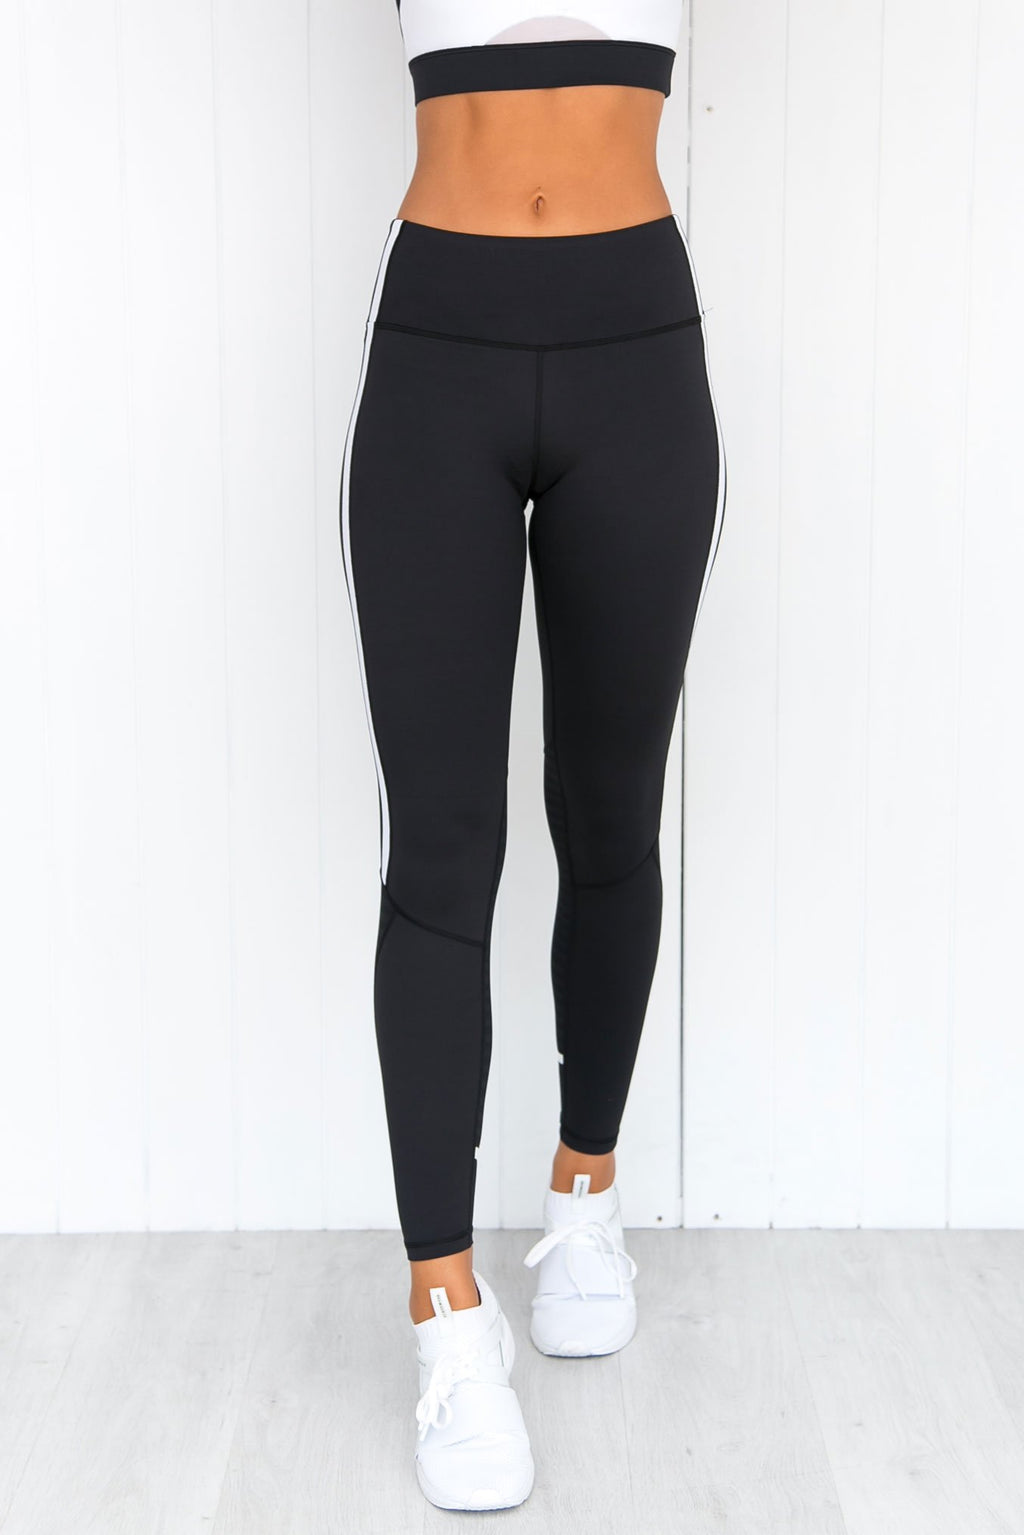 Mica Tarmac Black Leggings - PURE DASH